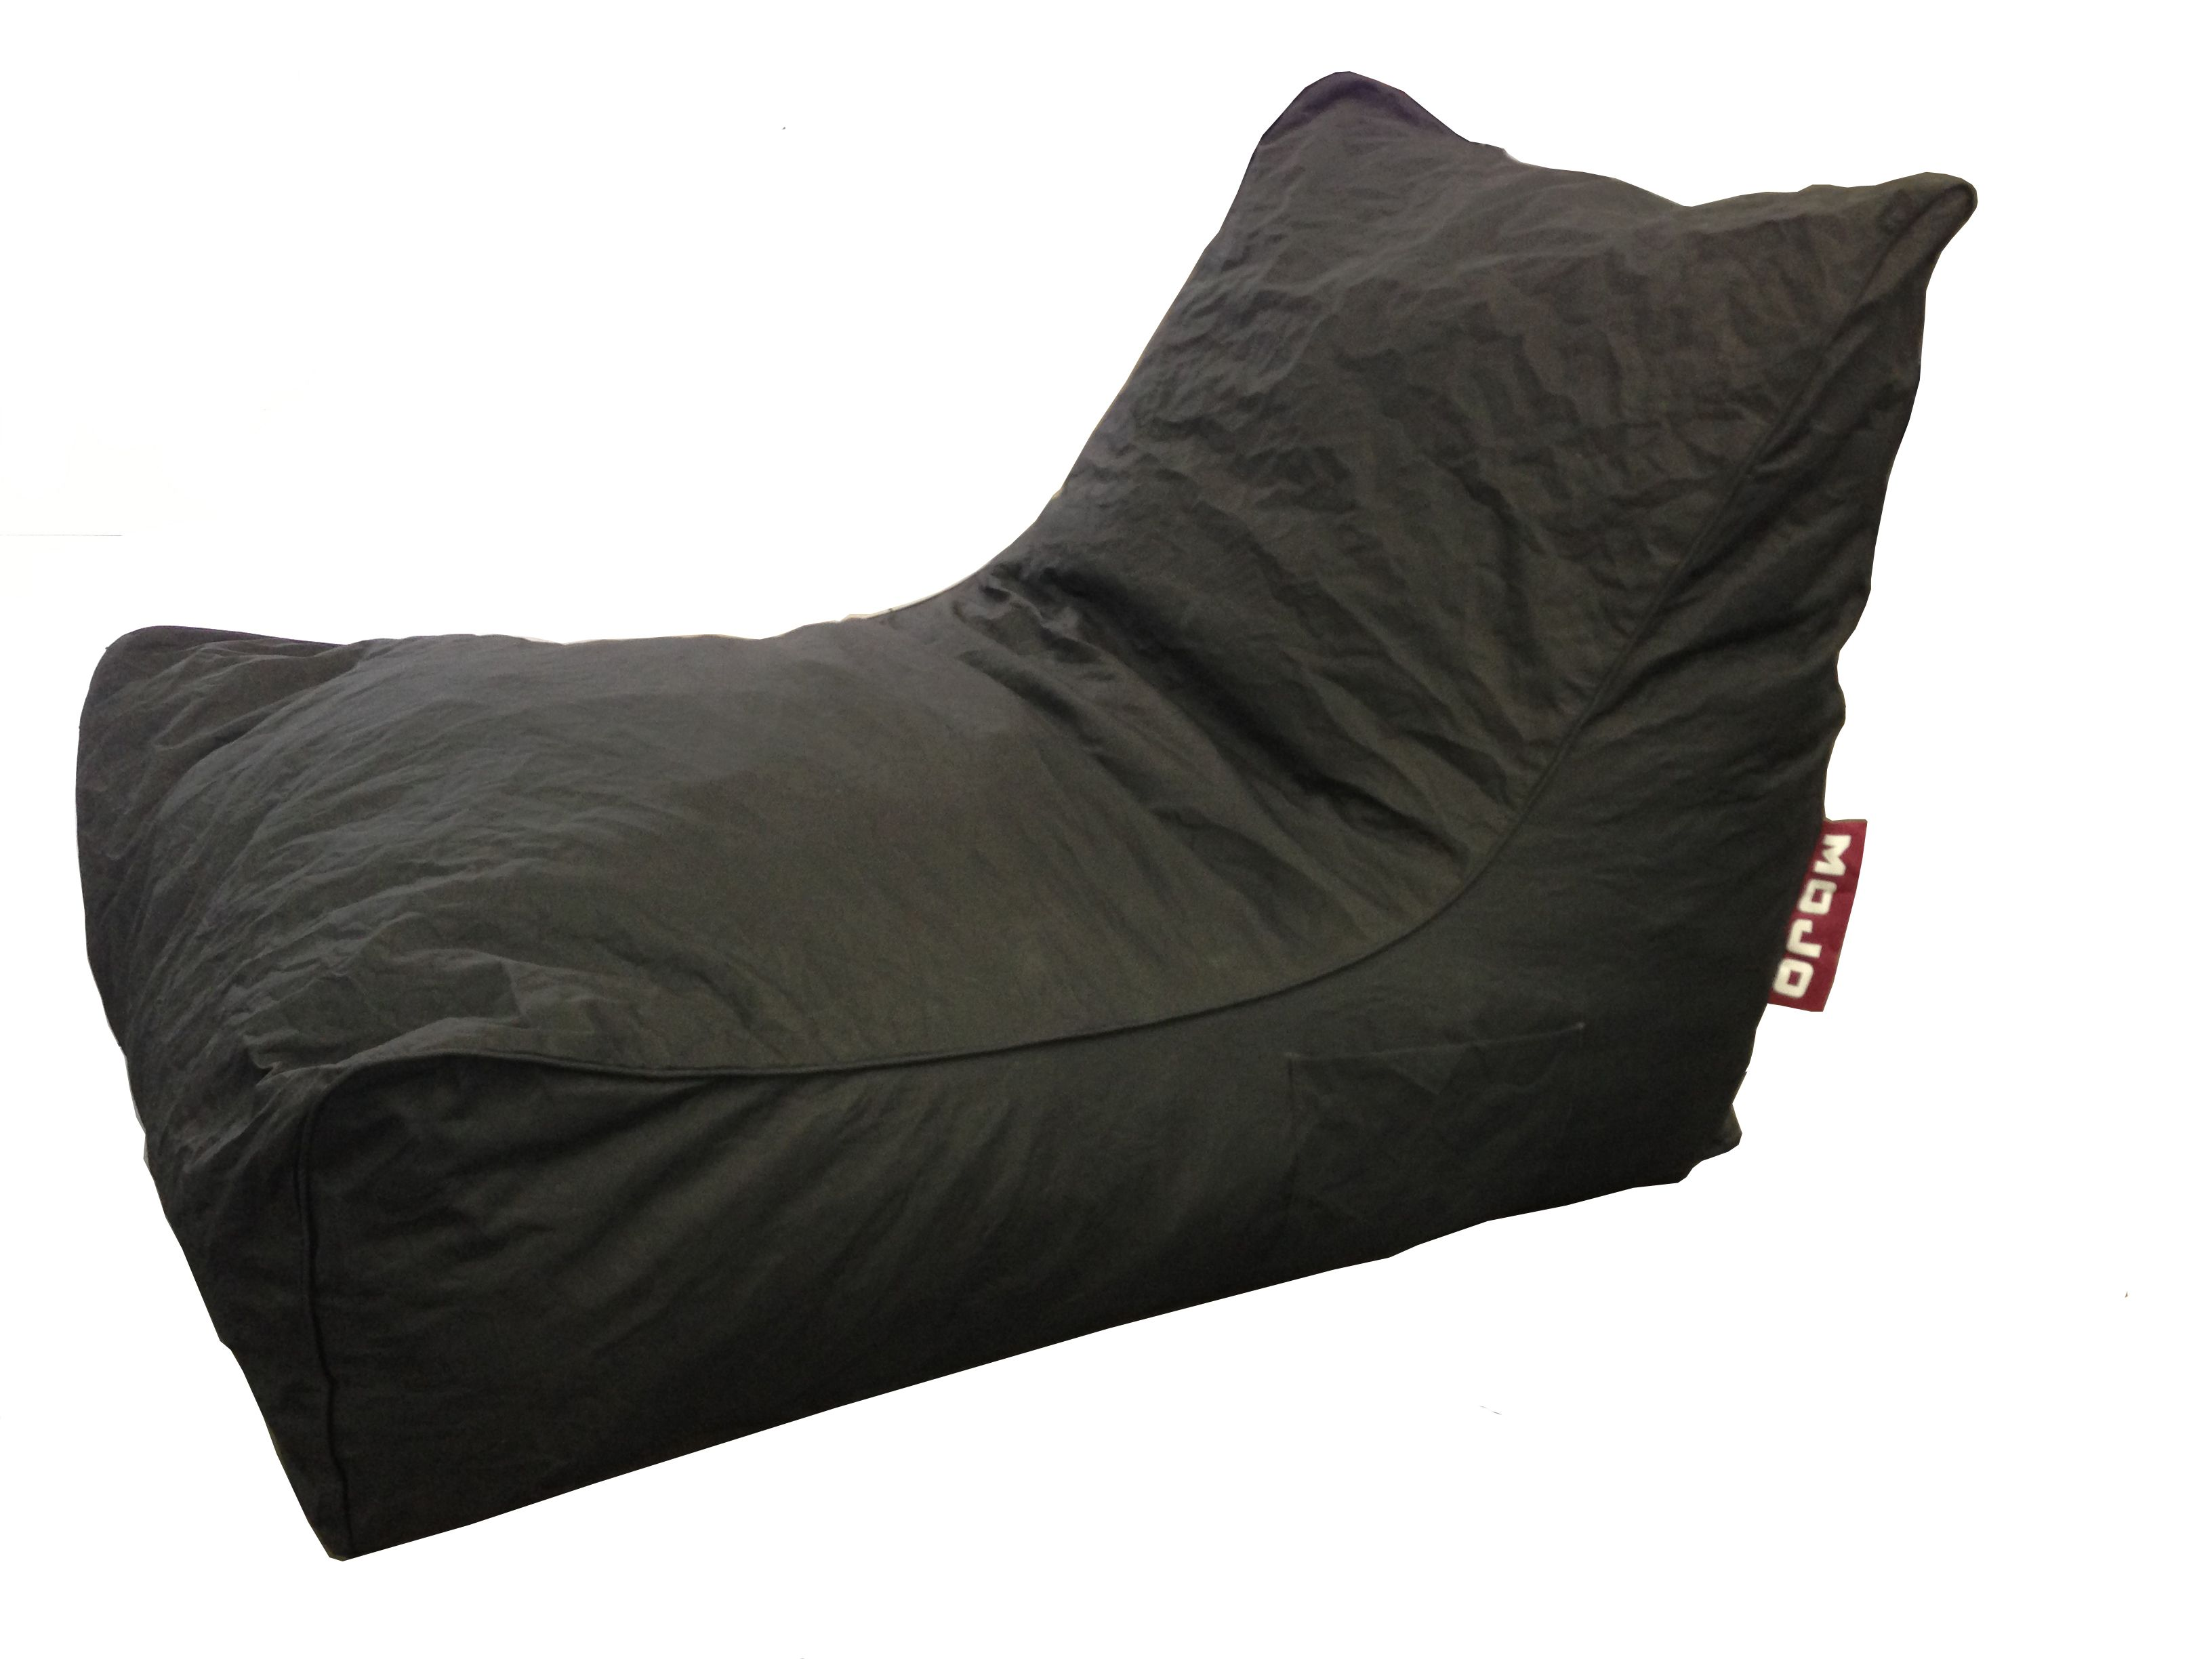 209382f42394 Mojo Maxi Lounge Outdoor Bean Bag MJOF0004 - Bunnings Warehouse ...